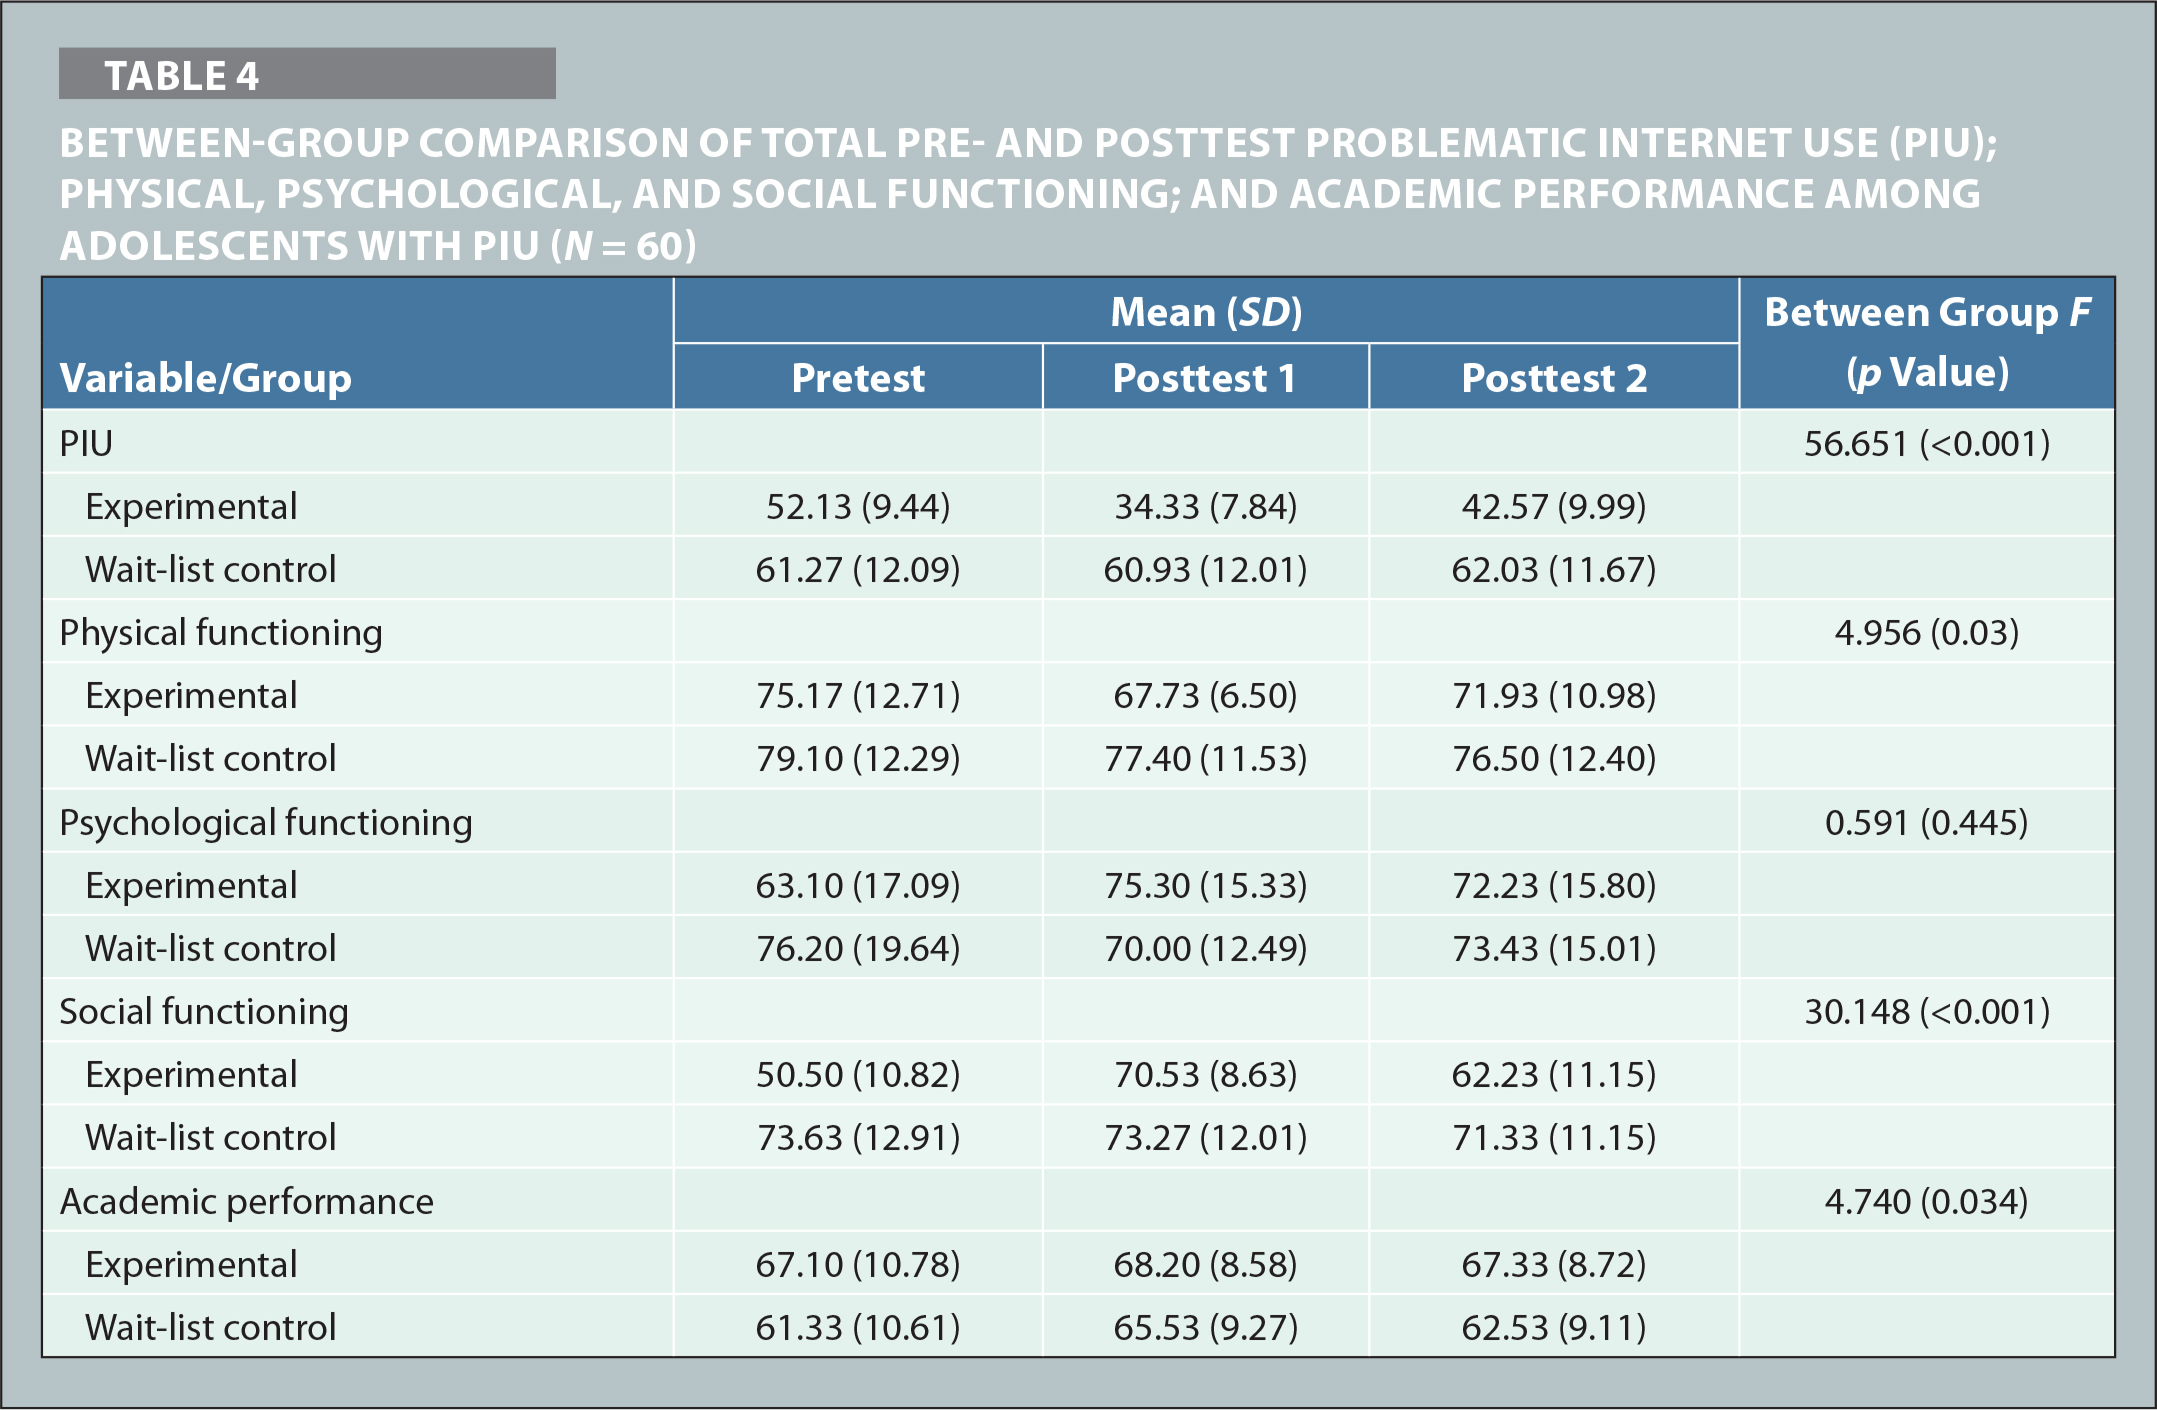 Between-Group Comparison of Total Pre- and Posttest Problematic Internet Use (PIU); Physical, Psychological, and Social Functioning; and Academic Performance Among Adolescents With PIU (N = 60)